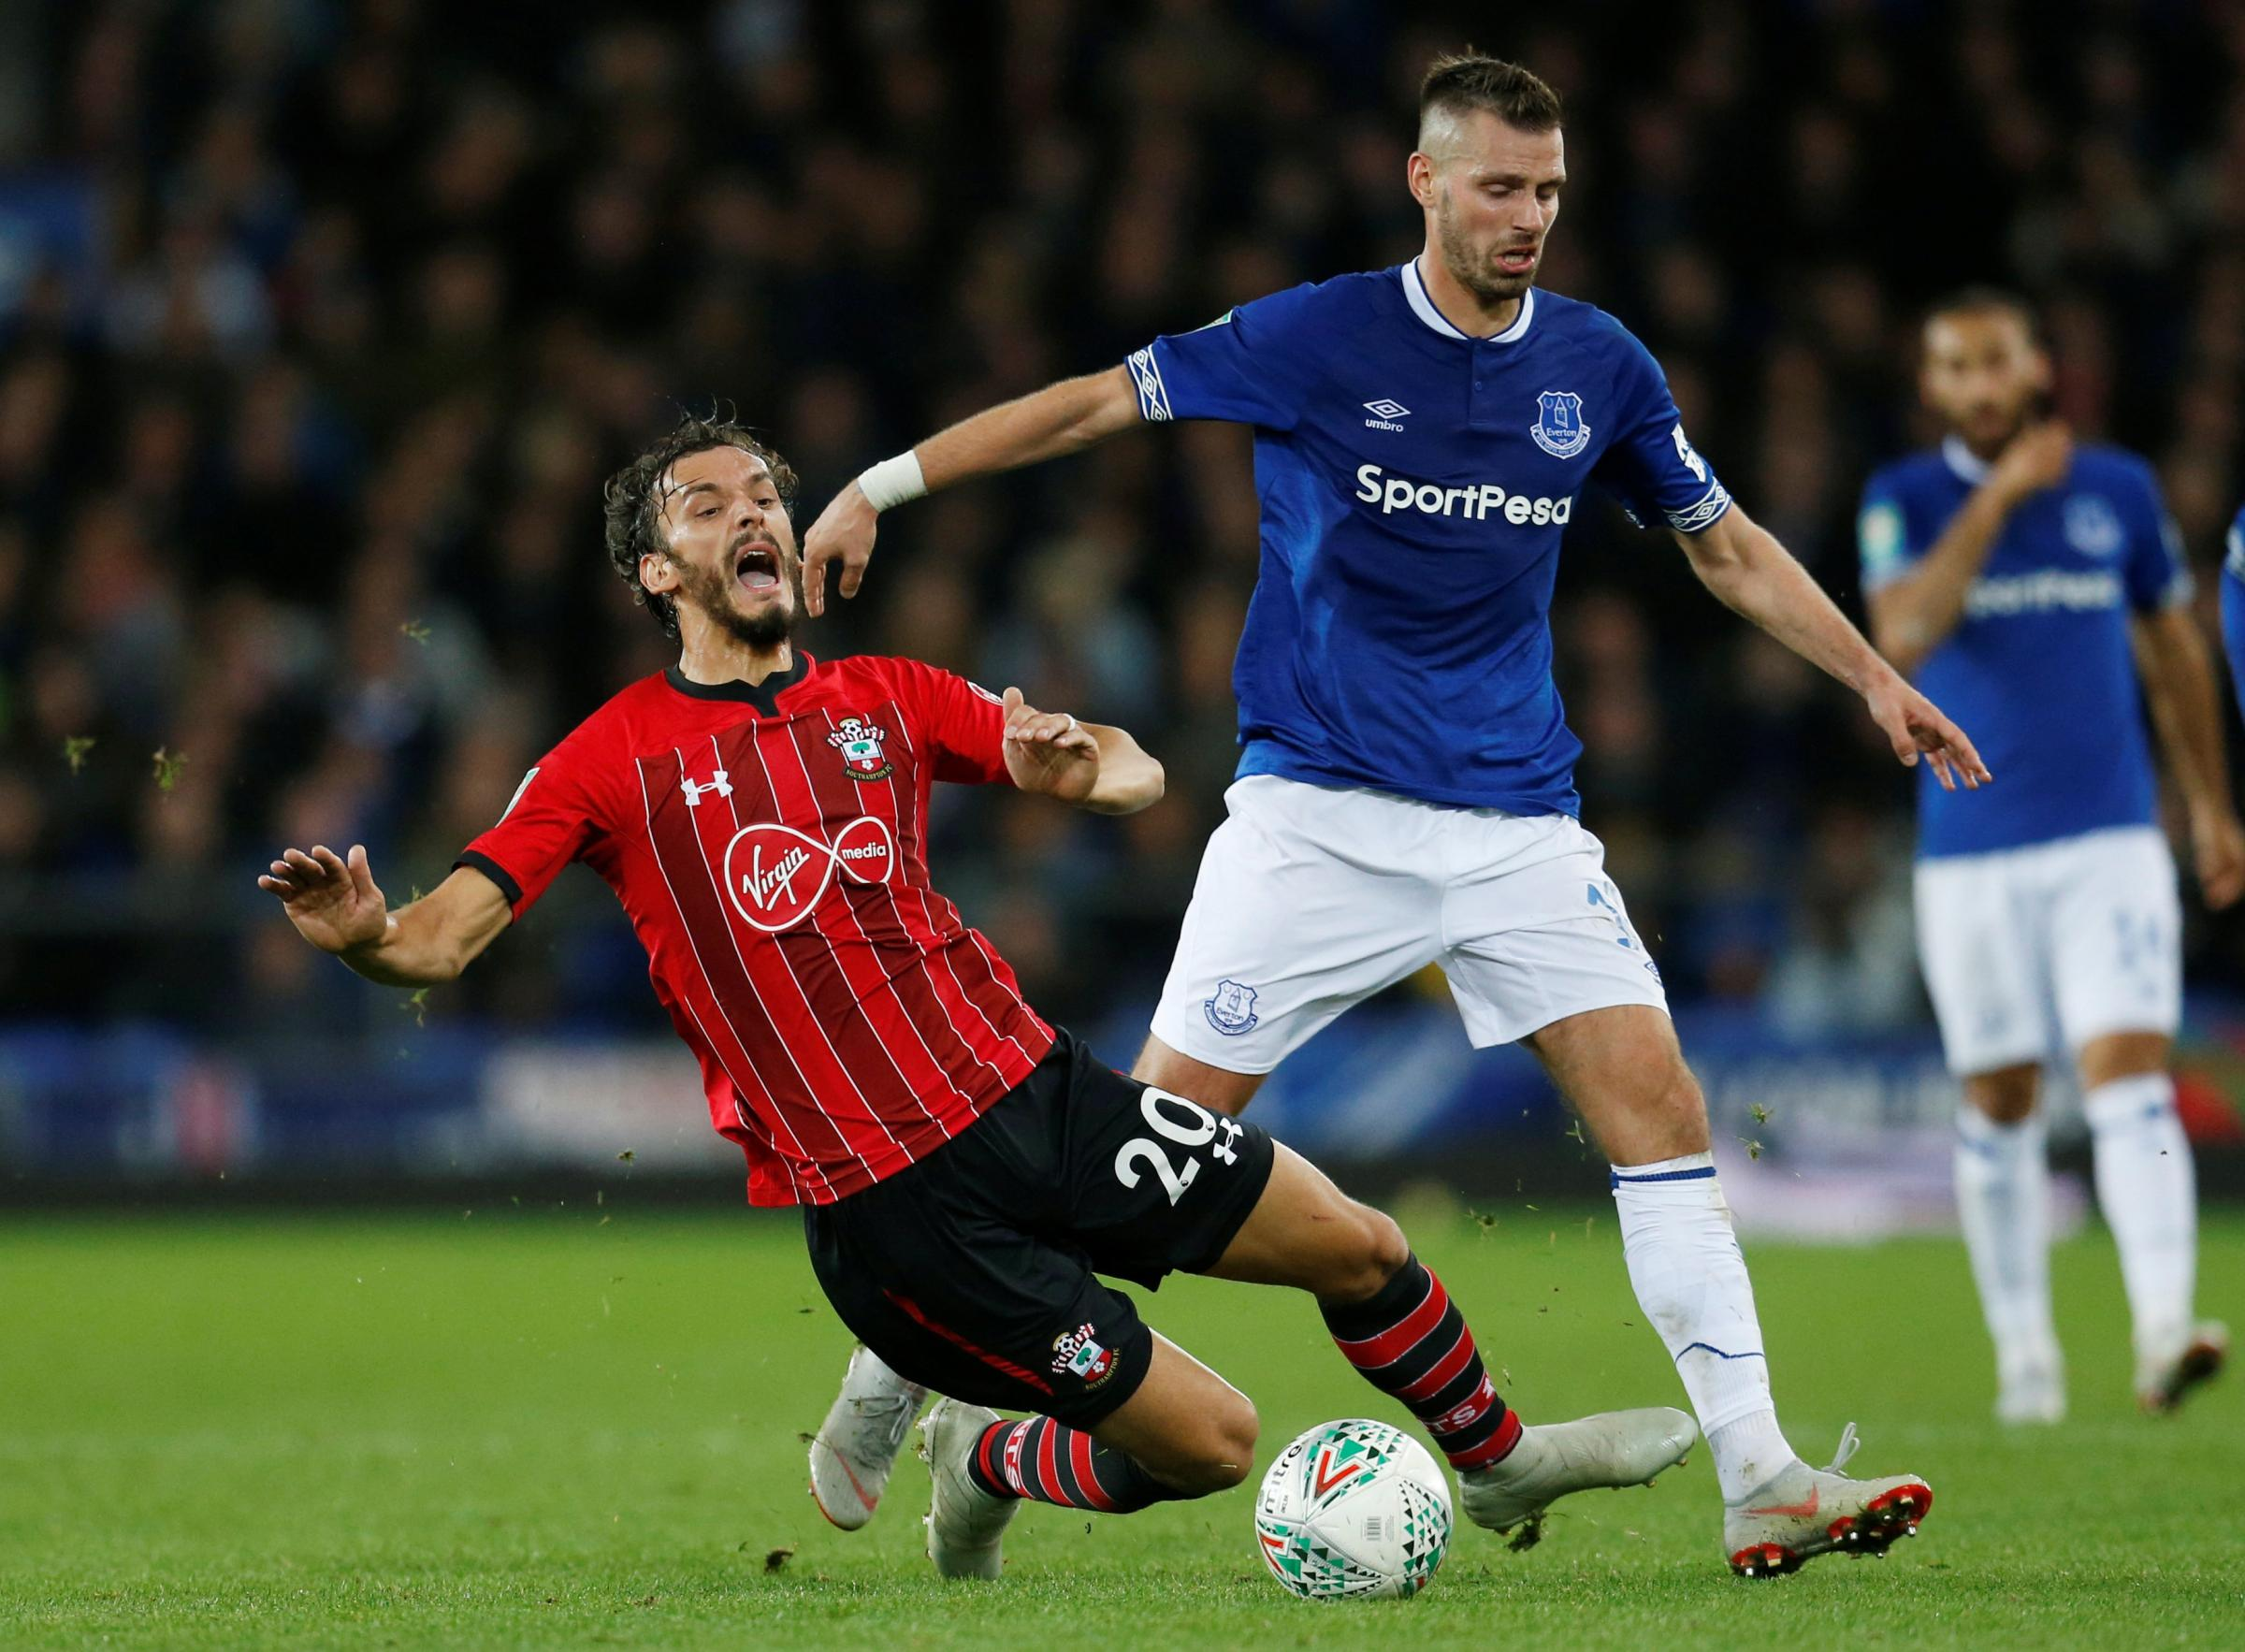 Morgan Schneiderlin may be available to face Watford. Picture: Action Images